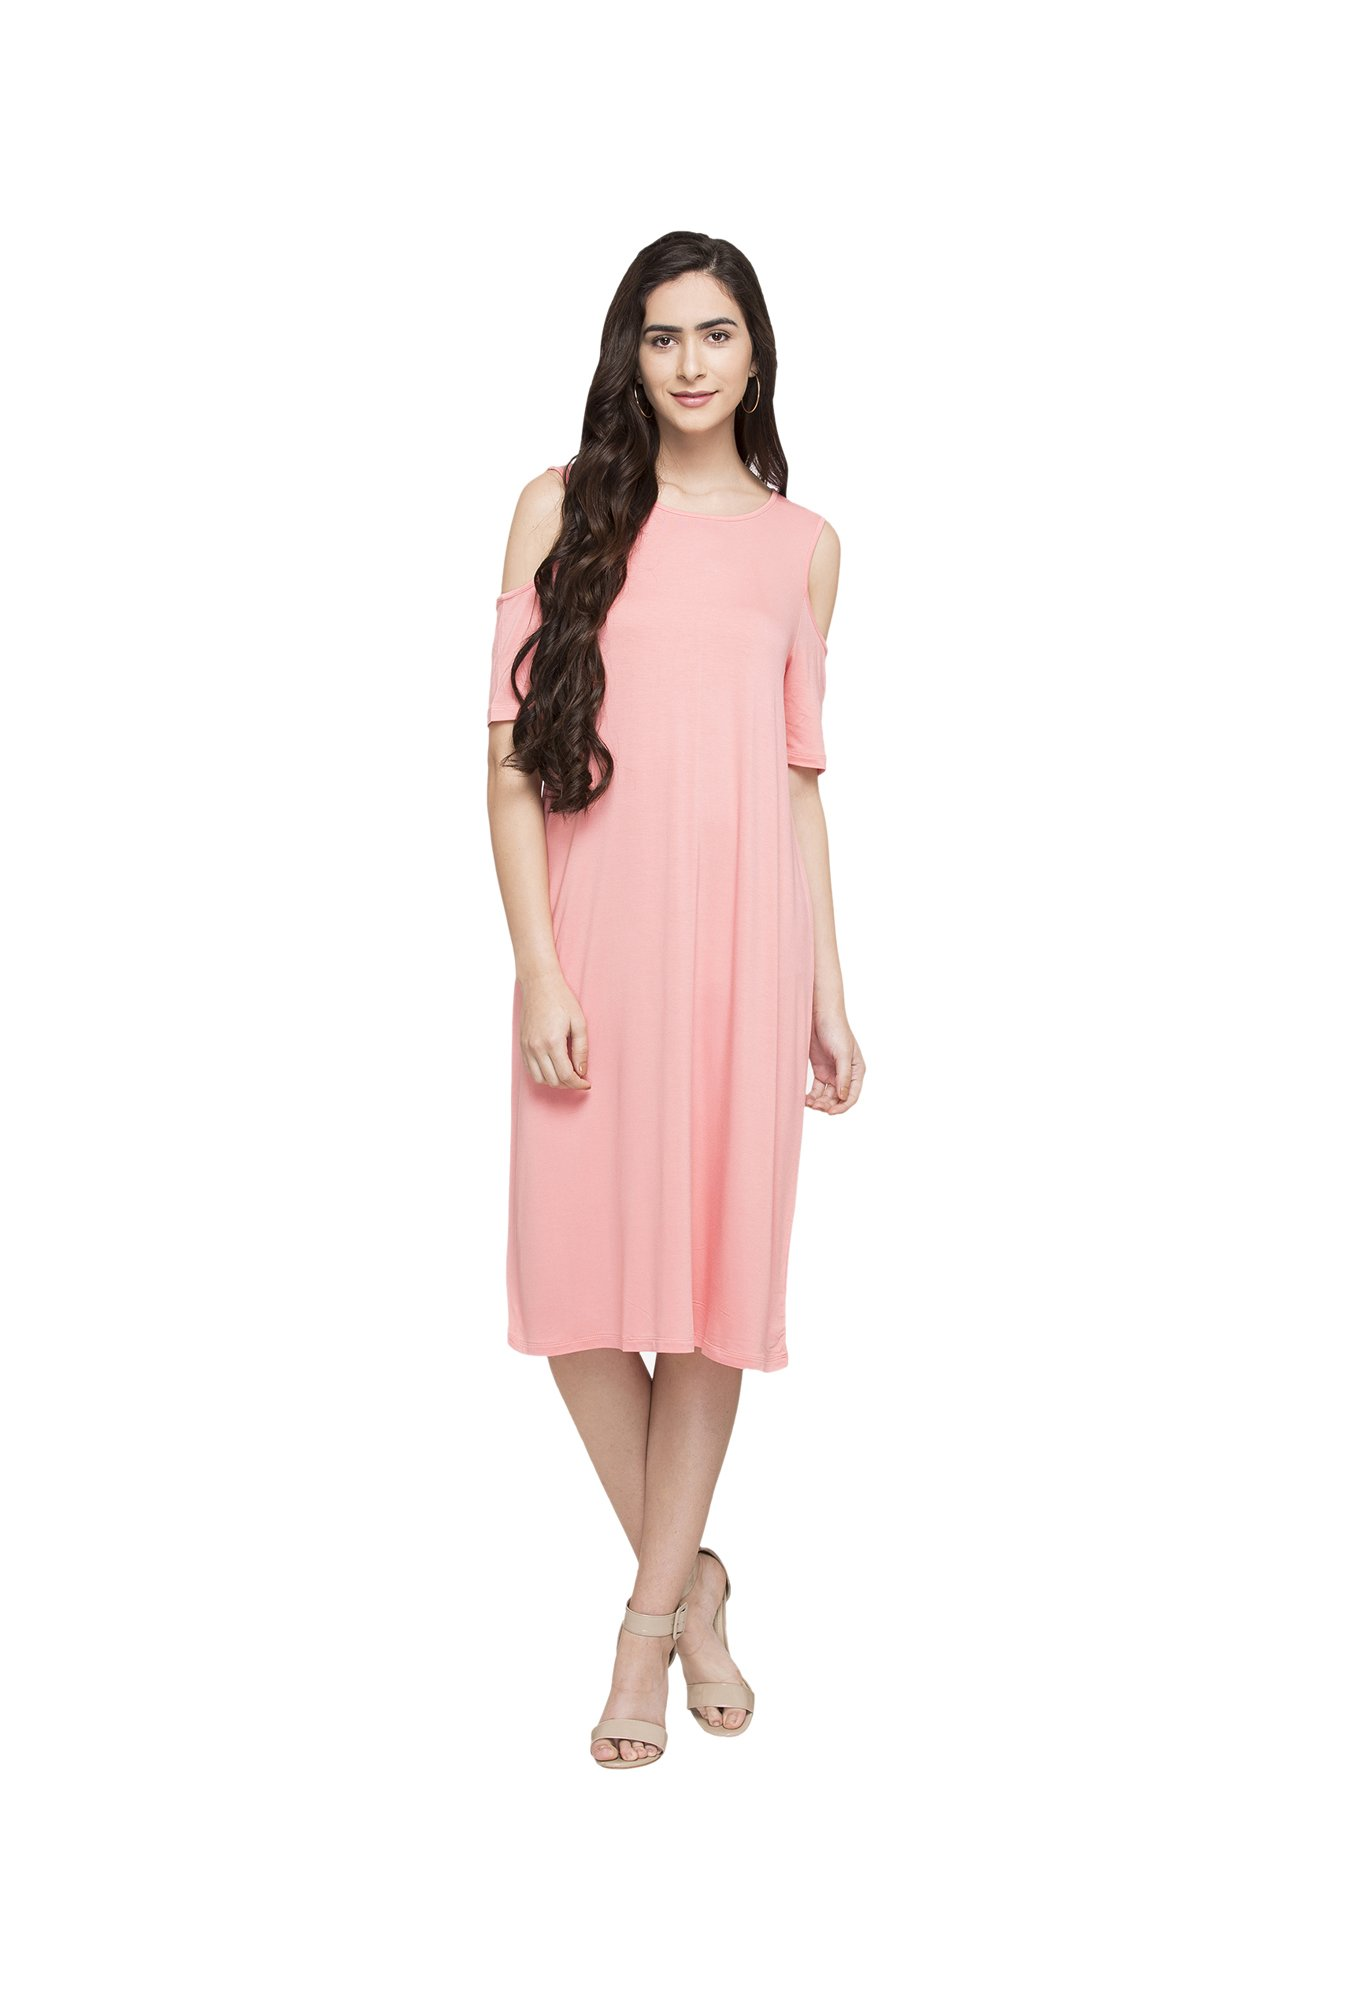 Globus Pink Below Knee Dress